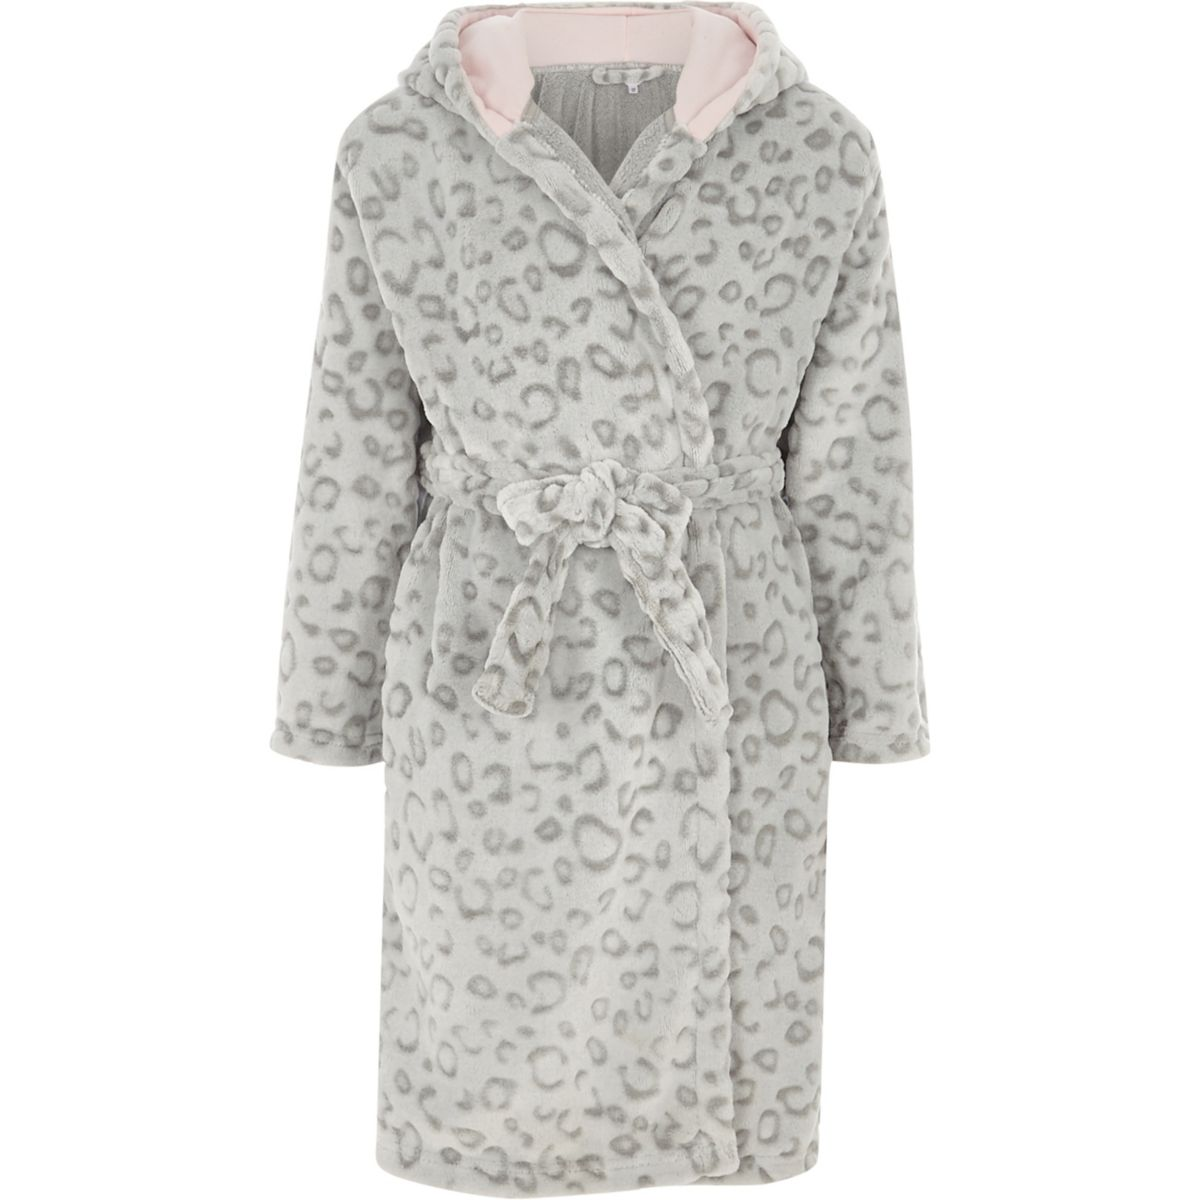 Girls grey leopard print dressing gown